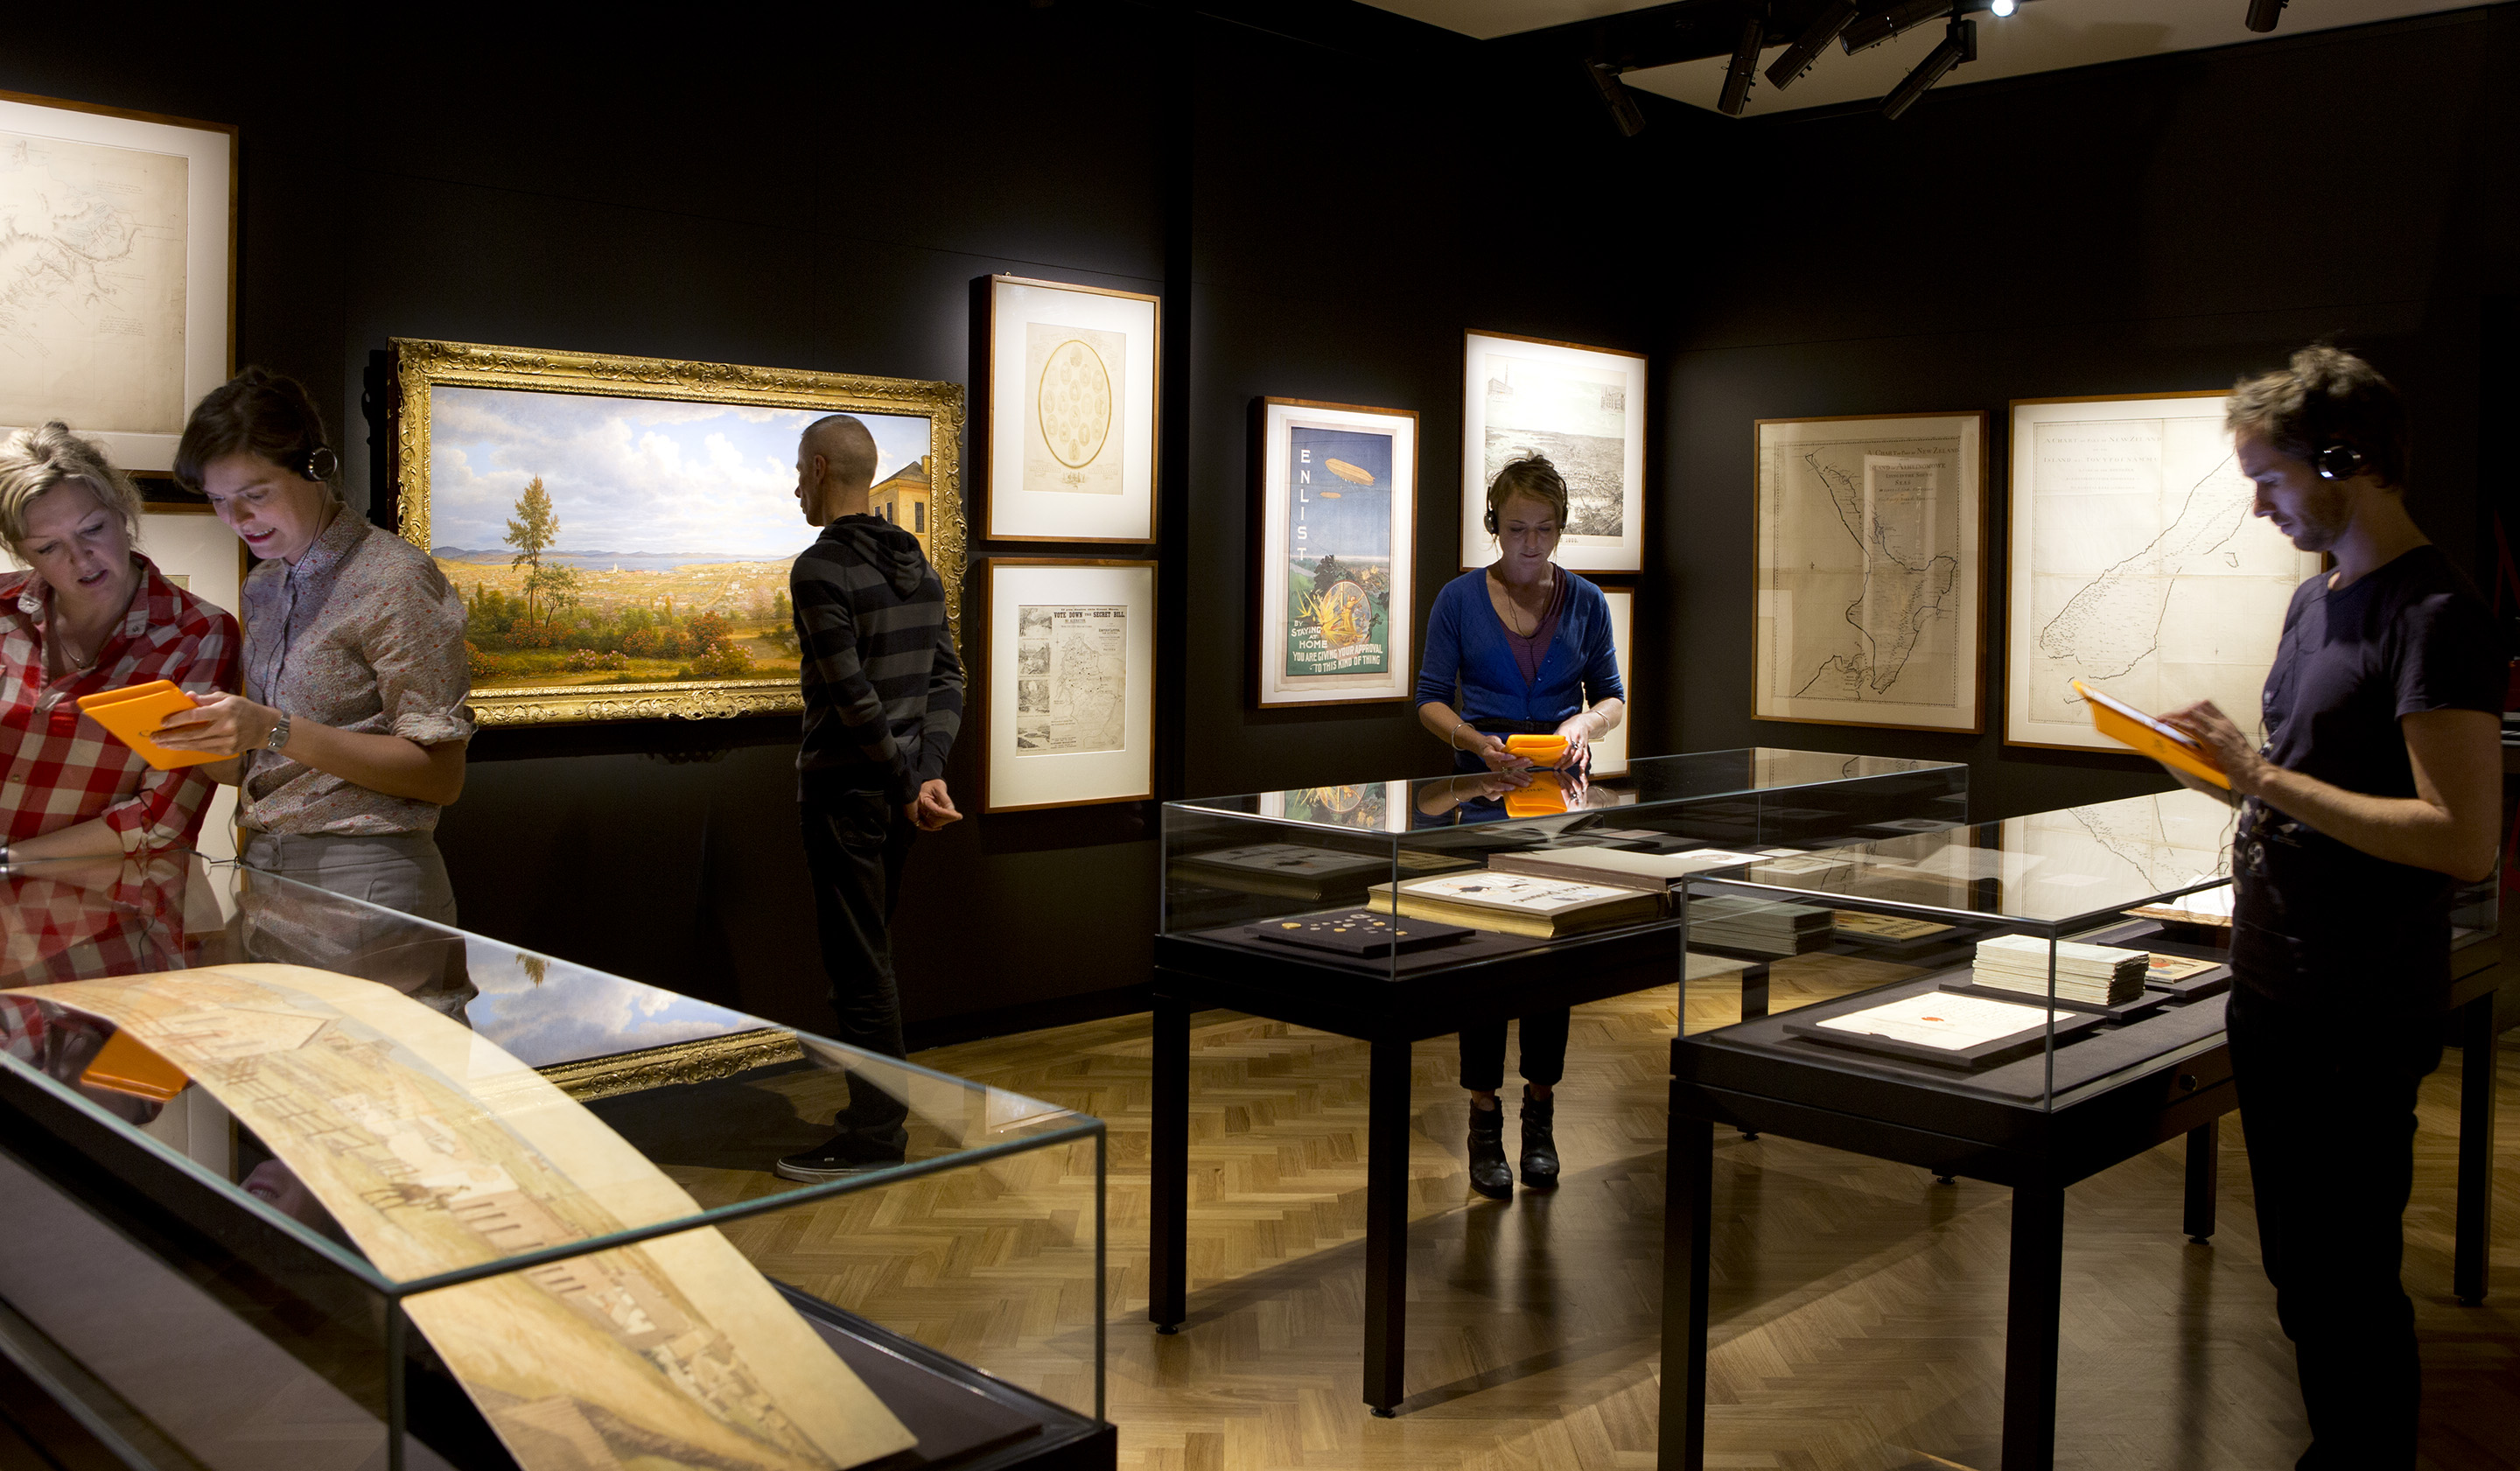 Three visitors look at a panoramic illustration on display in the AMAZE gallery